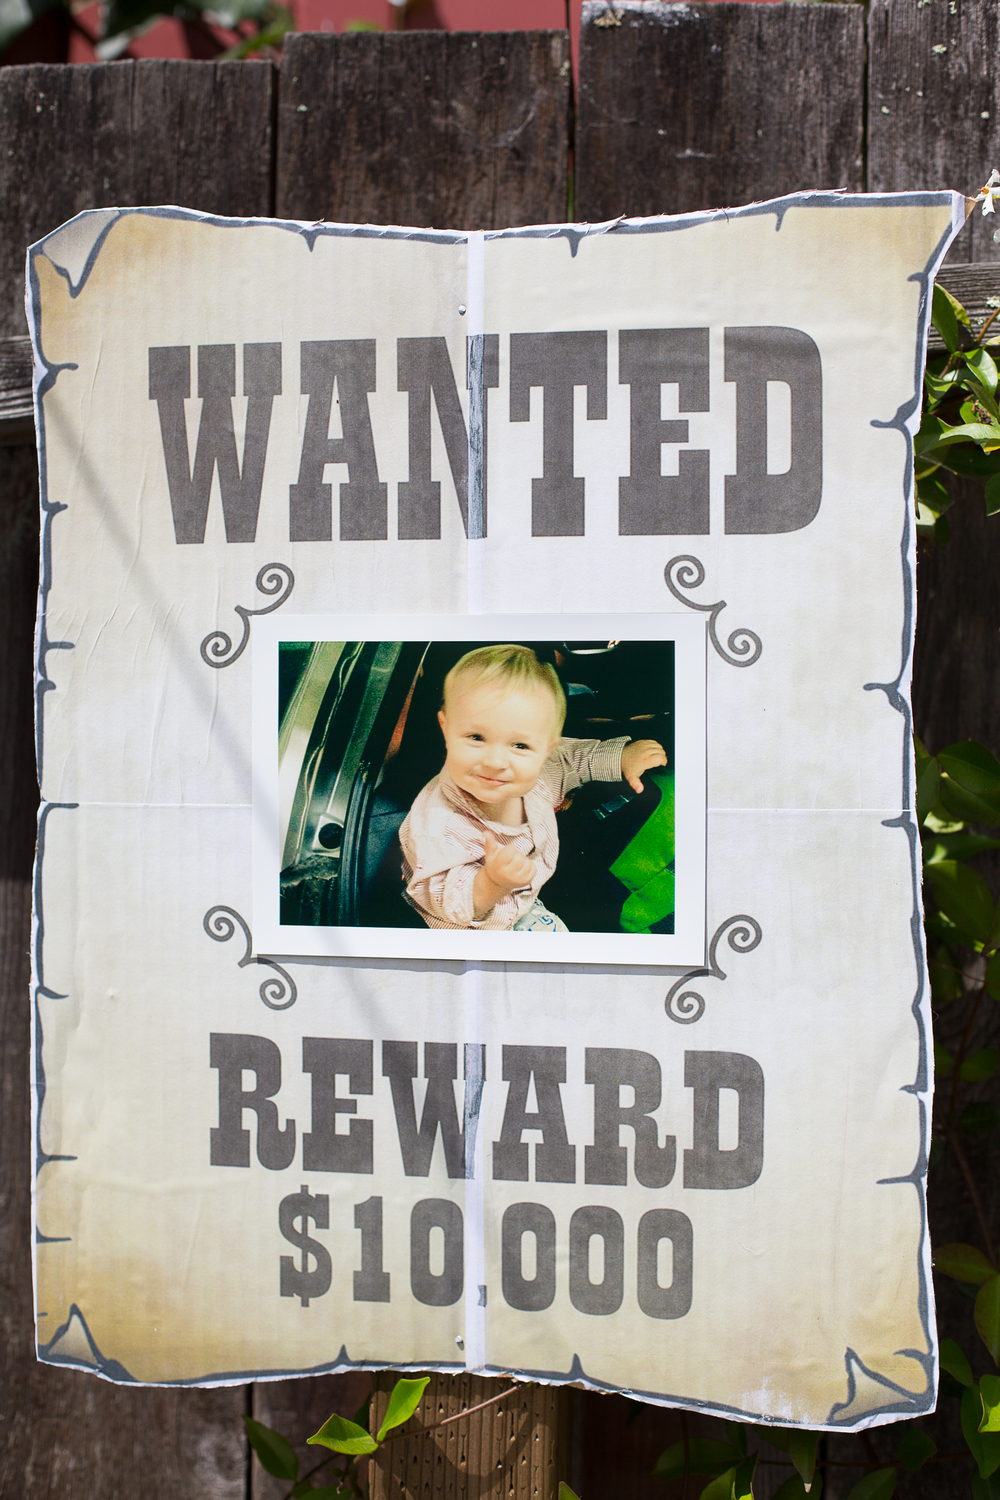 DIY Wanted Signs featuring the birthday boy.  Template available at Martha Stewart (http://www.marthastewart.com/271584/cowboy-cutouts).  I printed the template onto four 8x11 sheets.